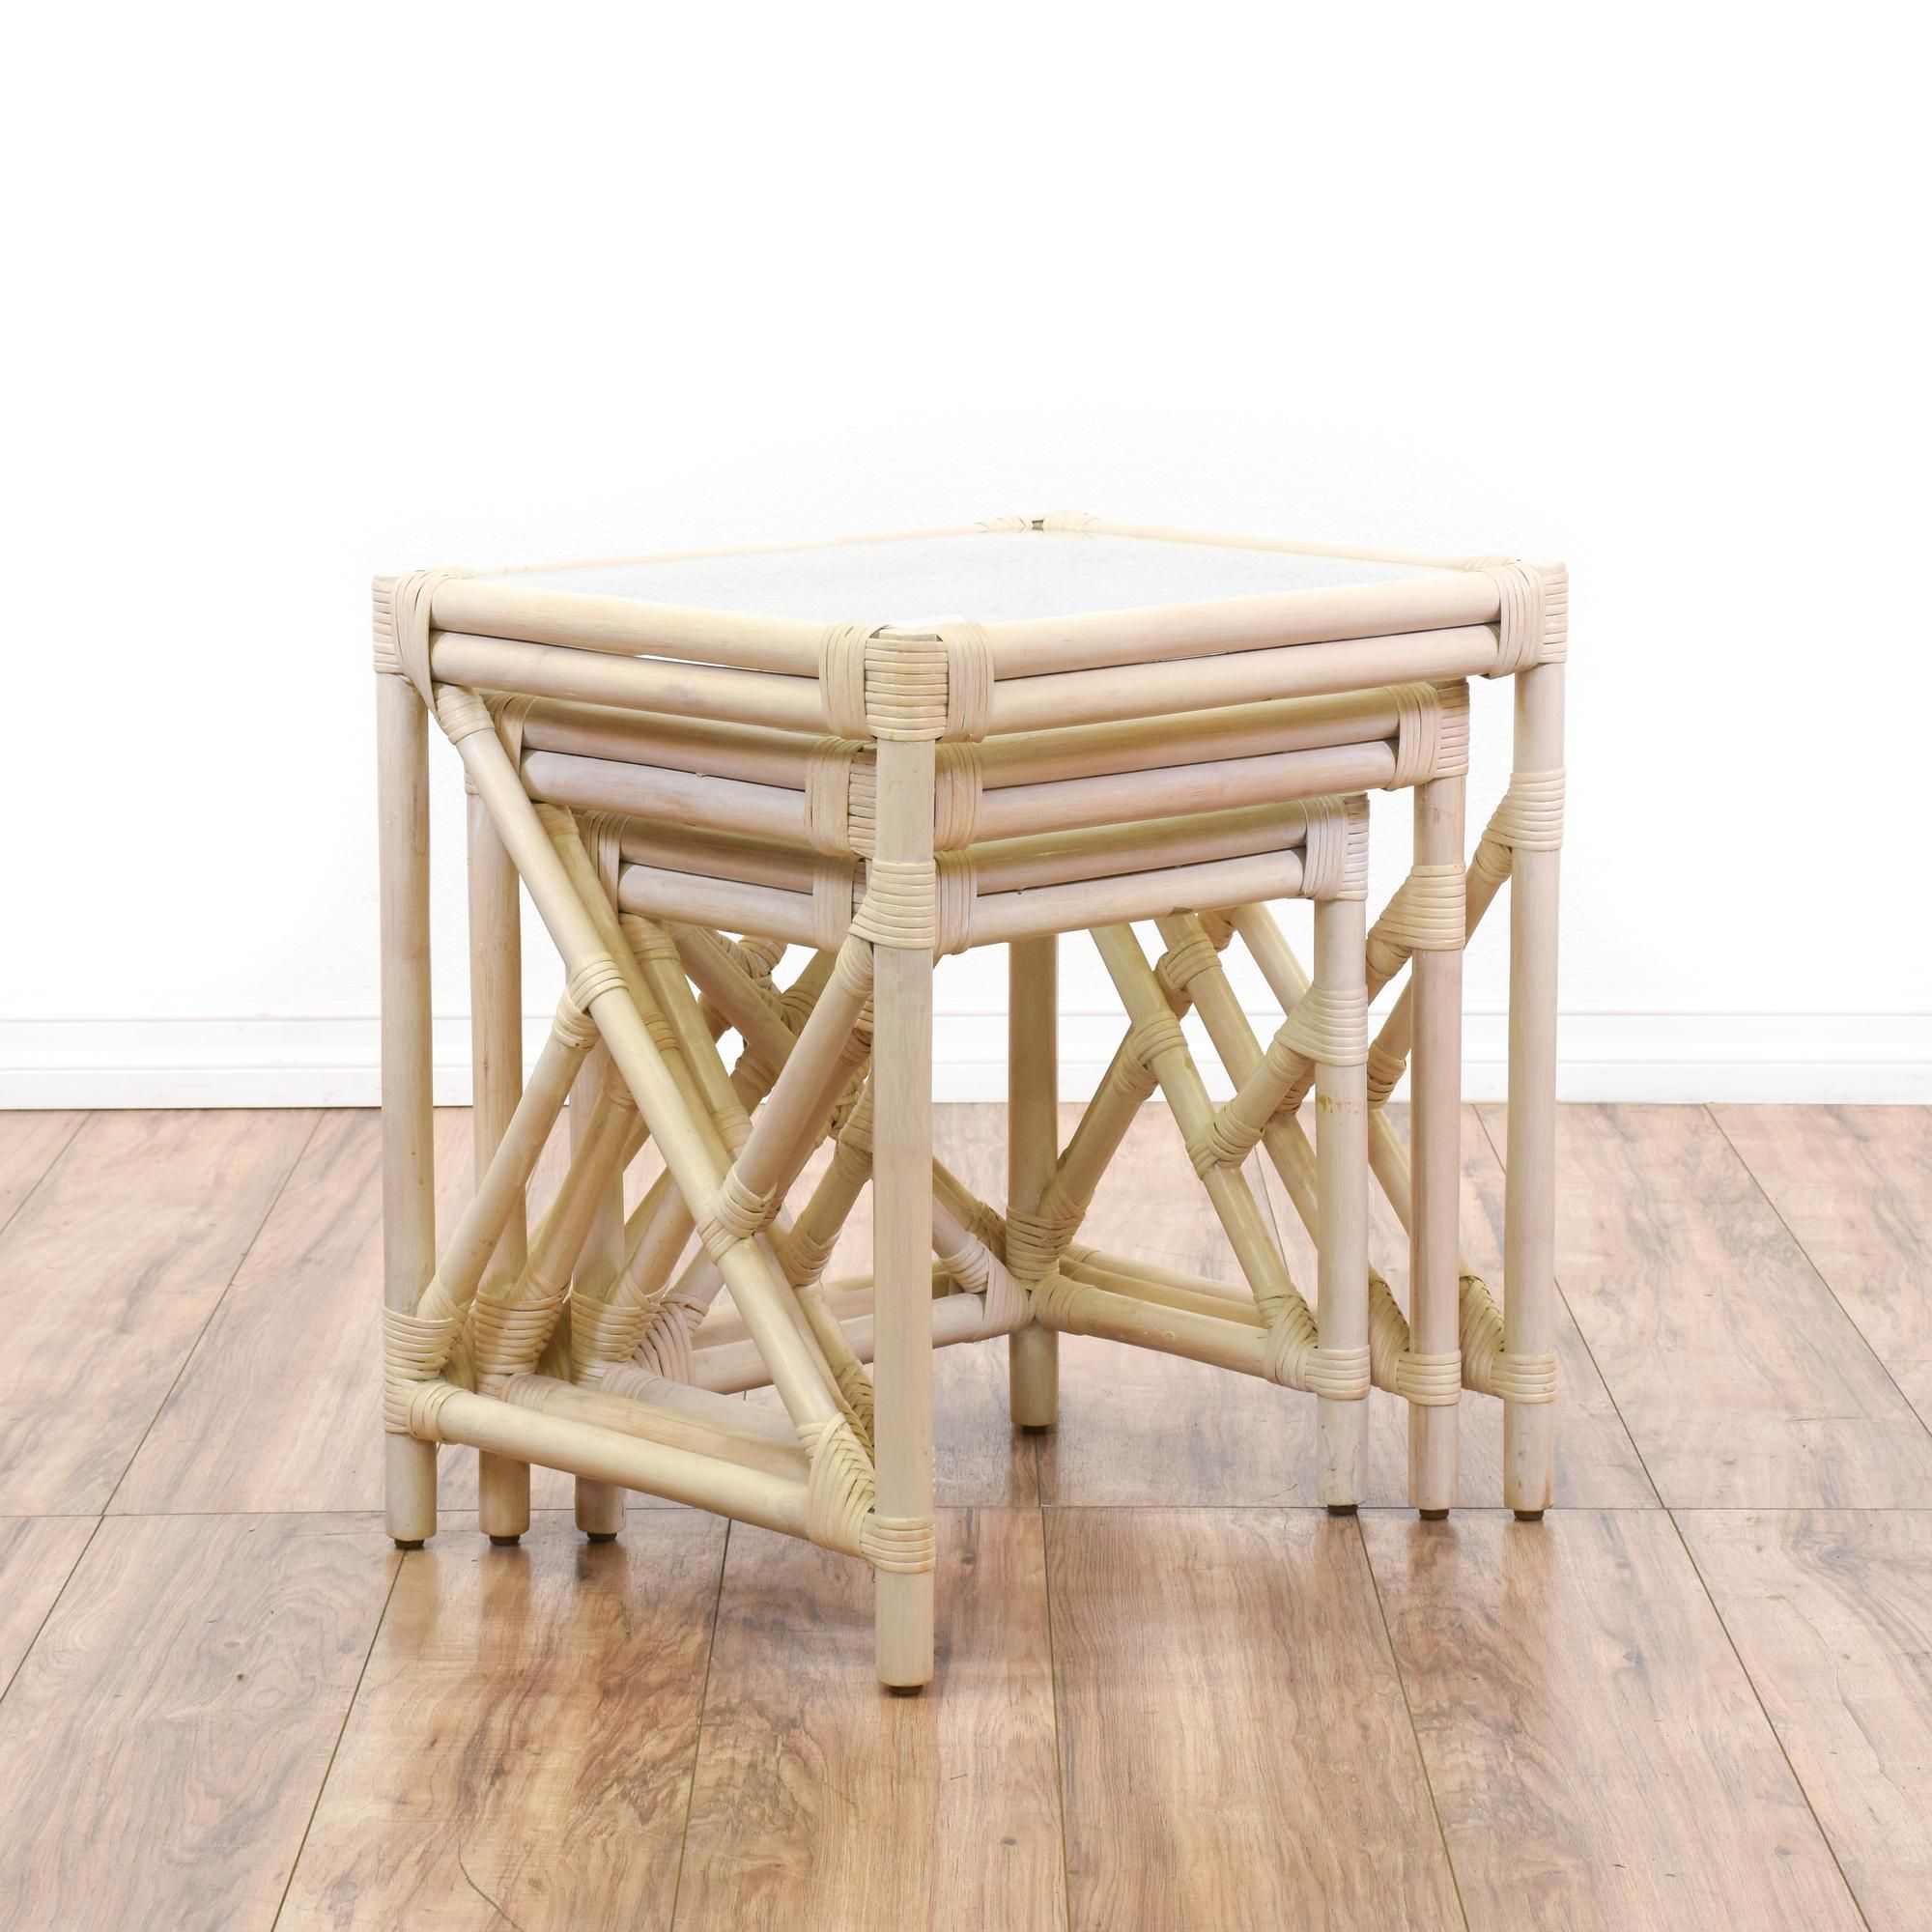 Set Of 3 Whitewashed Rattan Nesting Tables